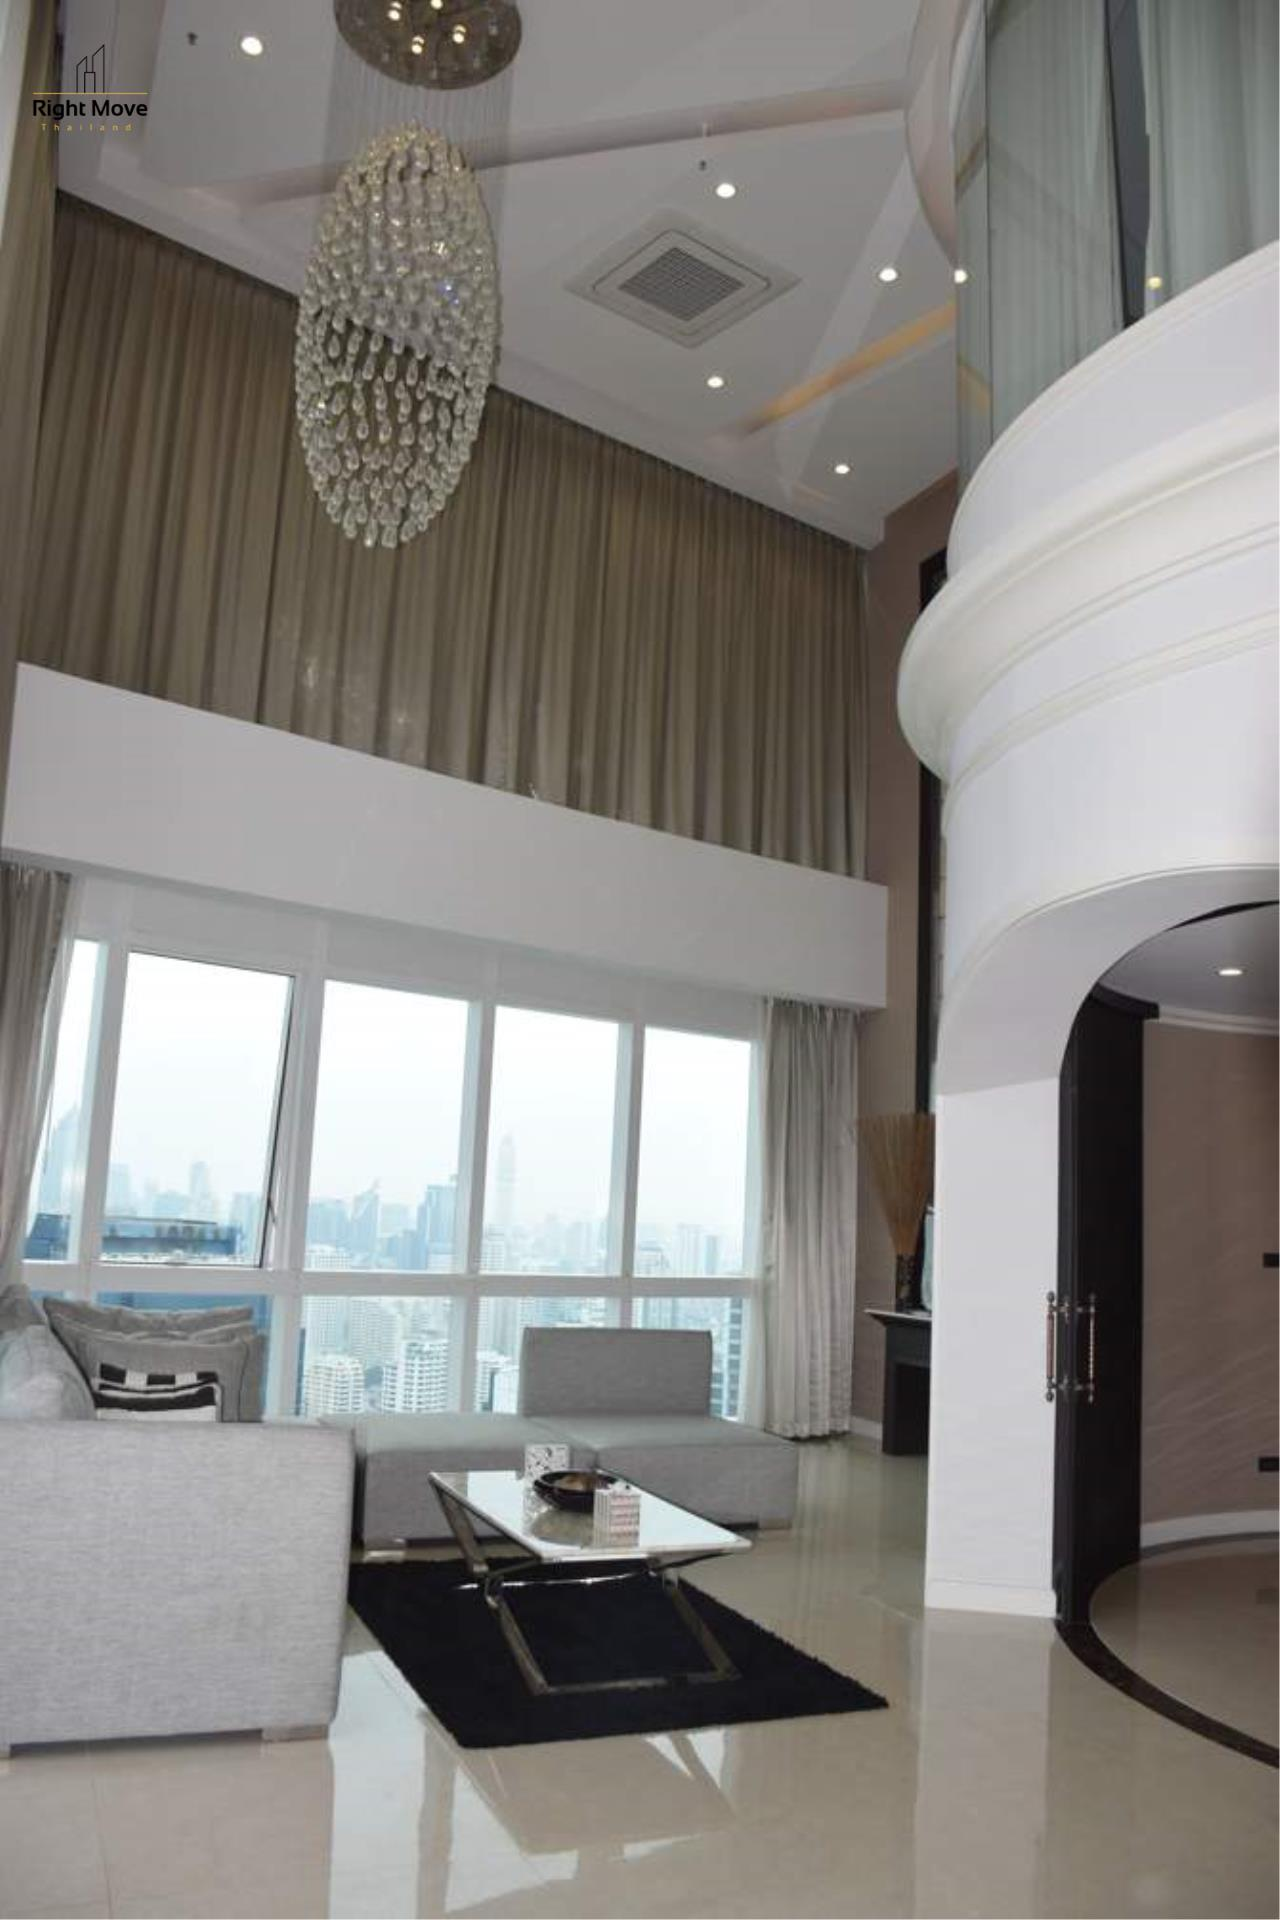 Right Move Thailand Agency's CA4297 Penthouse Duplex Millennium Residence For Rent - 250,000 THB - 316.85 Sqm 3